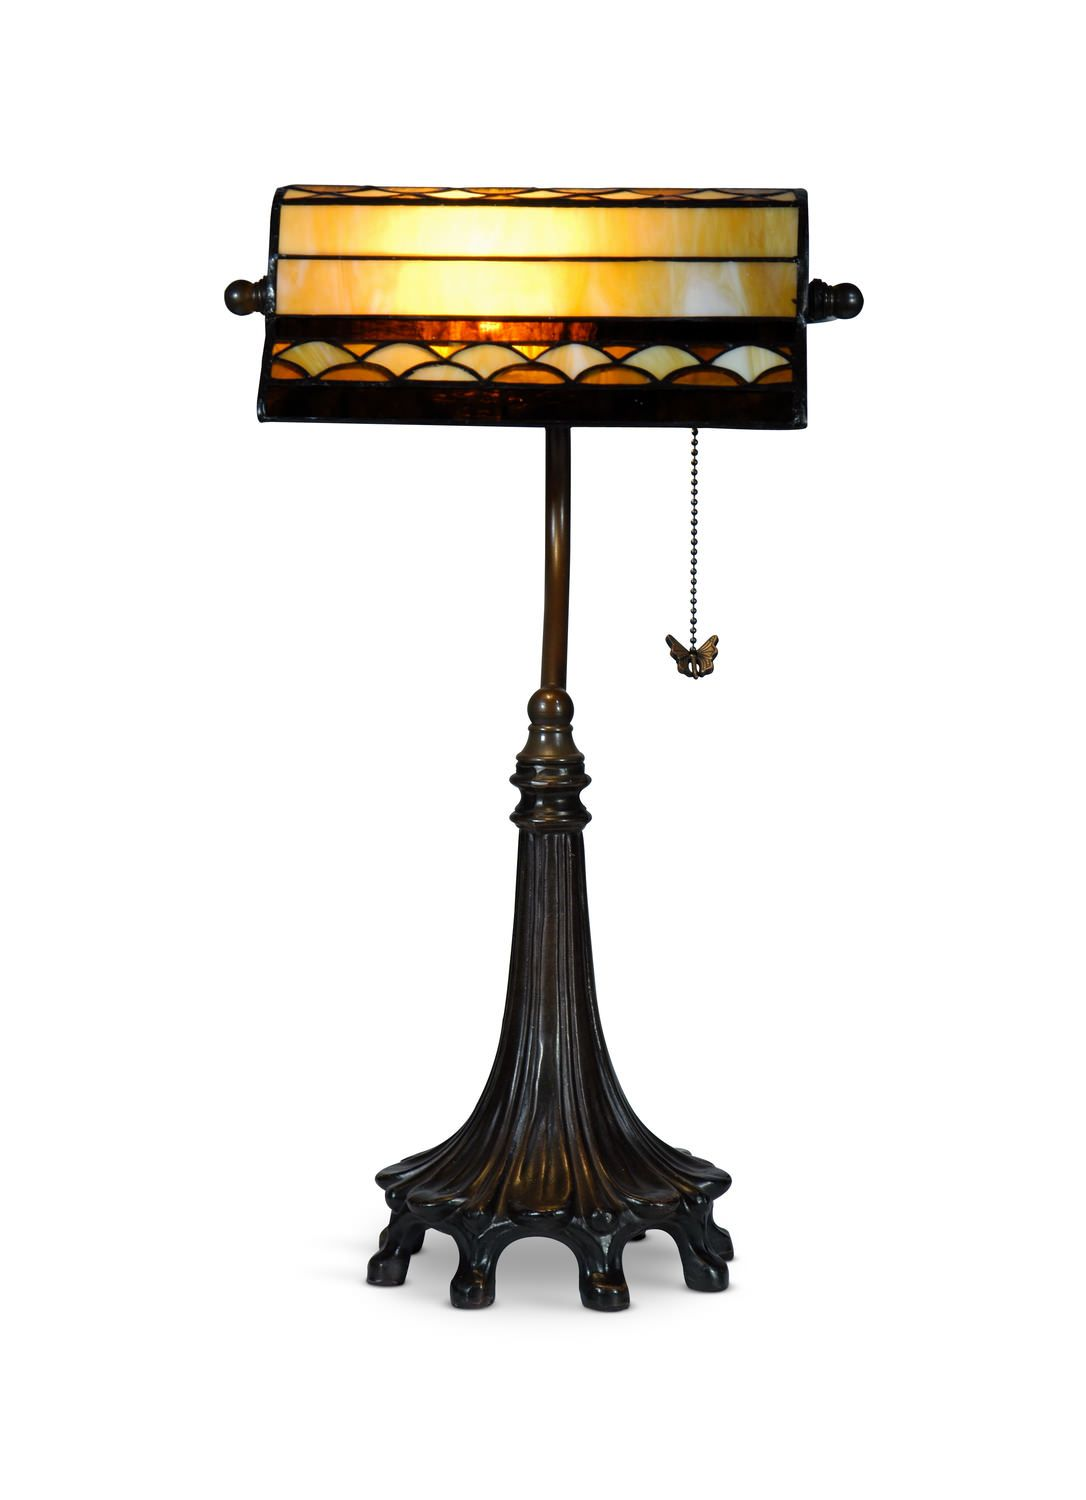 Amazing Townsend Desk Lamp | HOM Furniture | Furniture Stores In Minneapolis  Minnesota U0026 Midwest Pictures